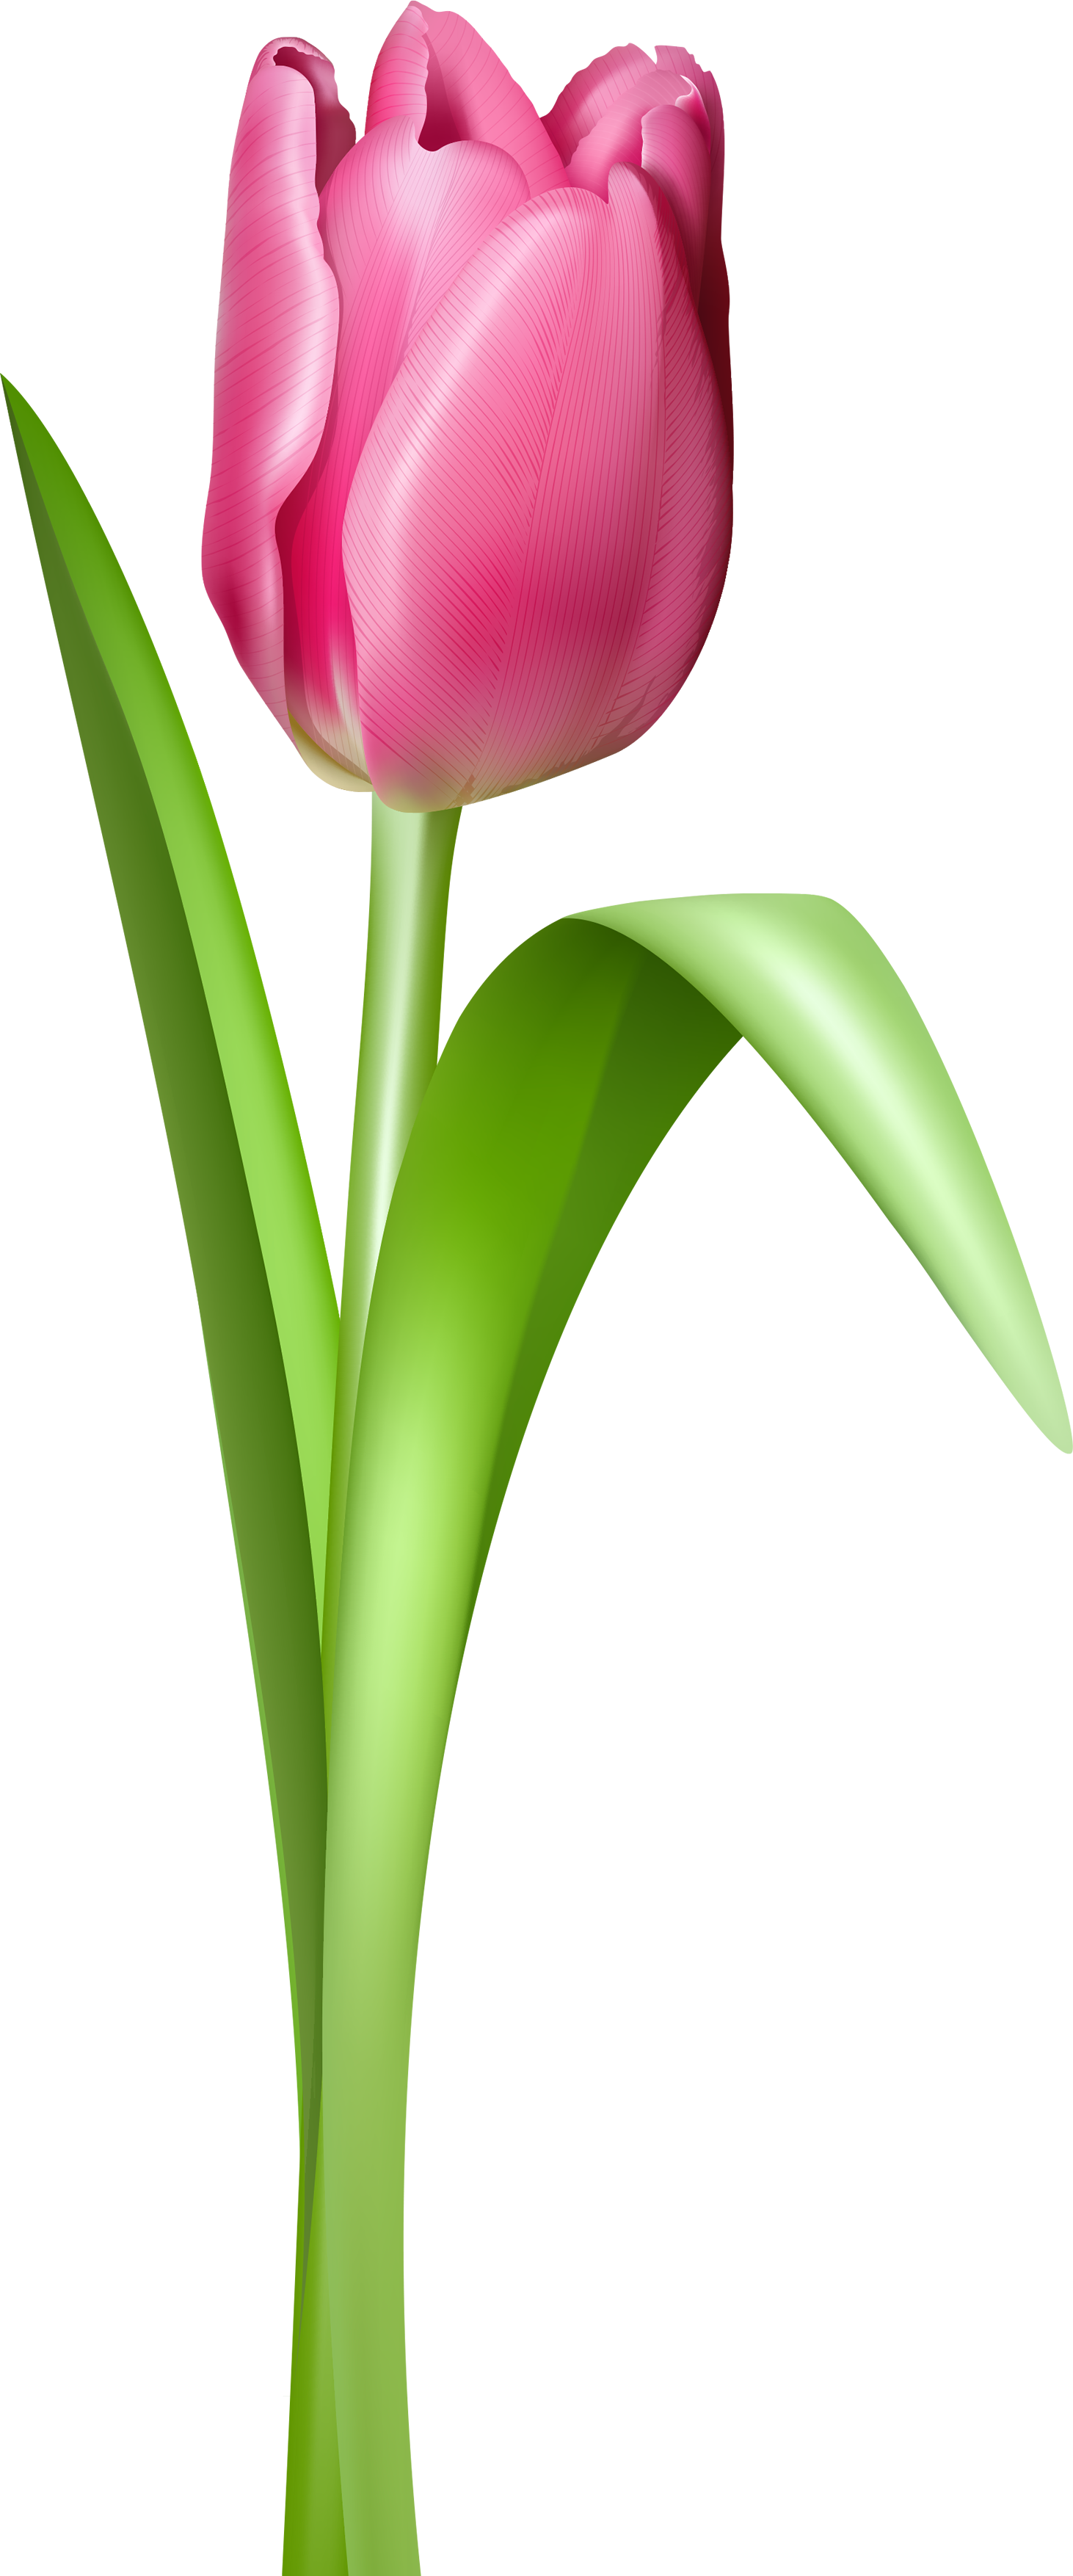 Tulip flower clipart clipart freeuse download Tulip PNG image | photos for painting | Pinterest | Flowers clipart freeuse download